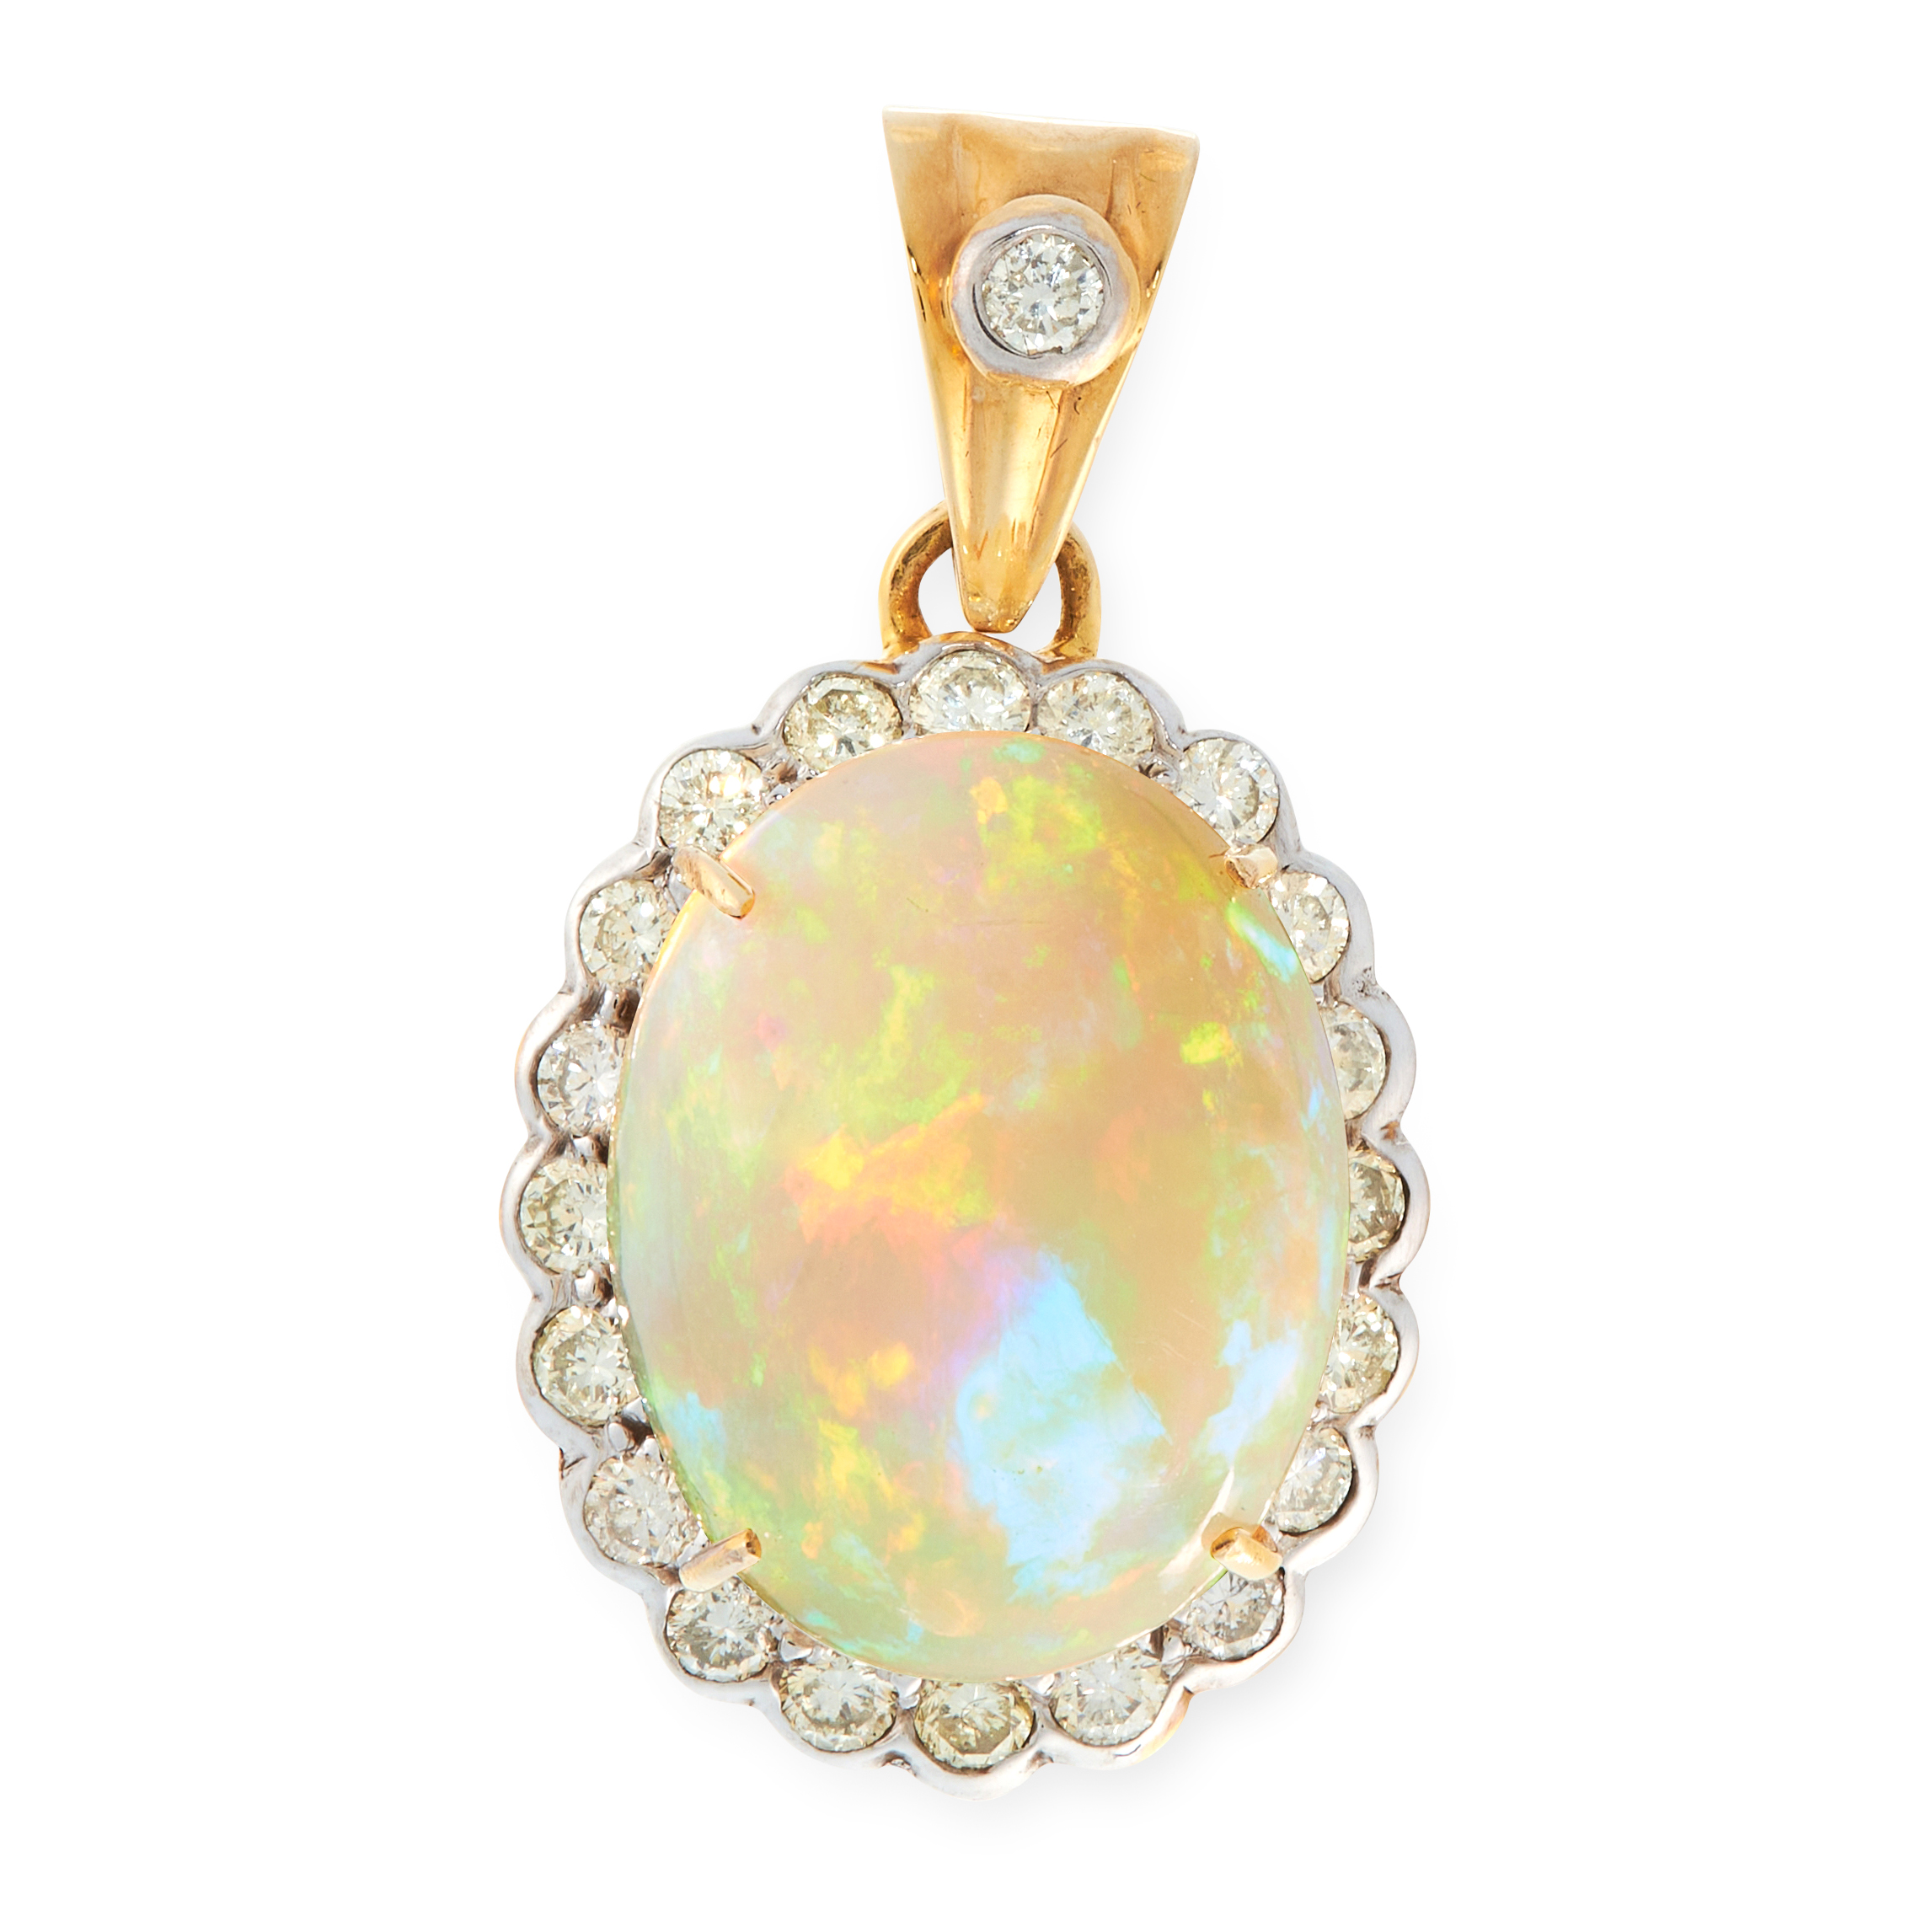 AN OPAL AND DIAMOND PENDANT in high carat yellow gold, set with an oval cabochon opal of 7.18 carats